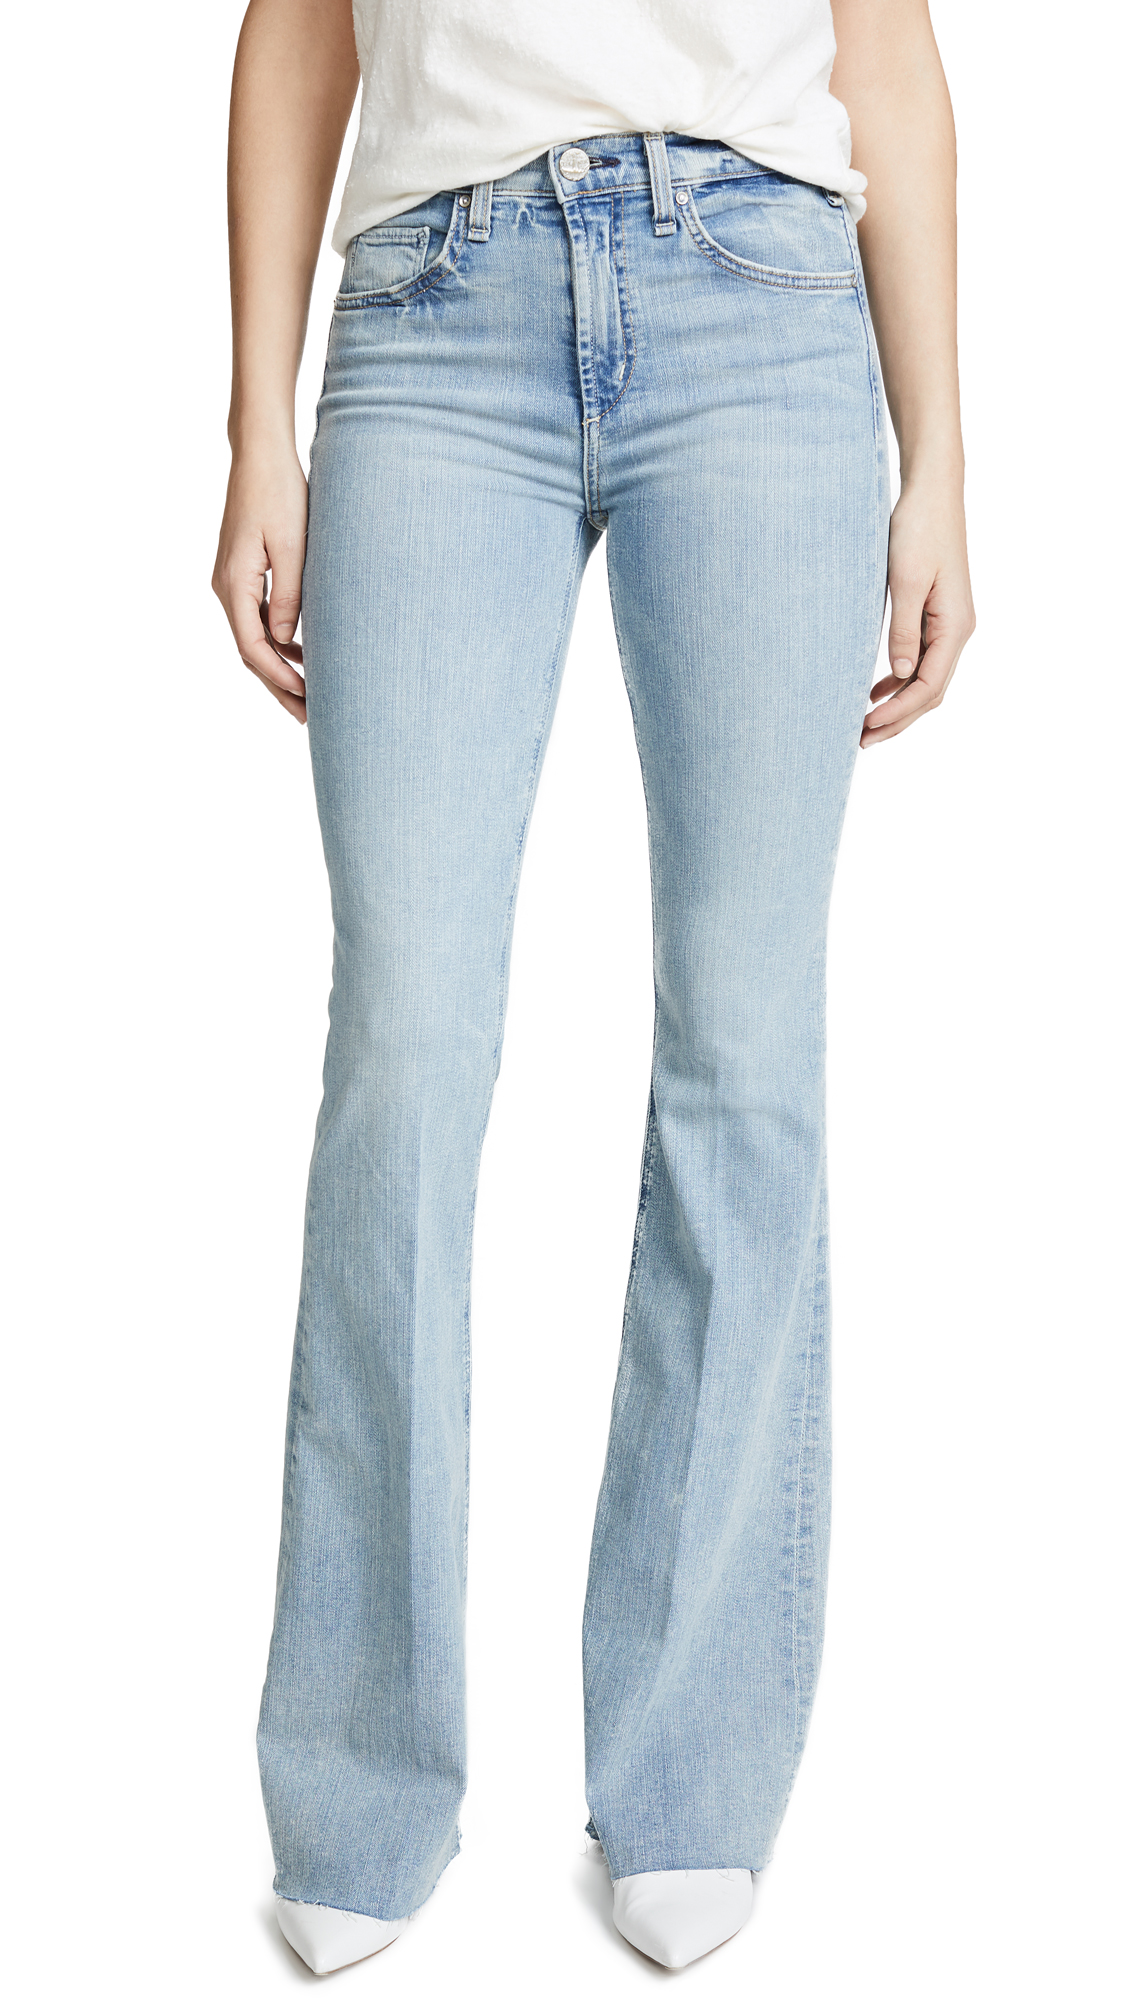 McGuire Denim Majorelle Flare In Starlight